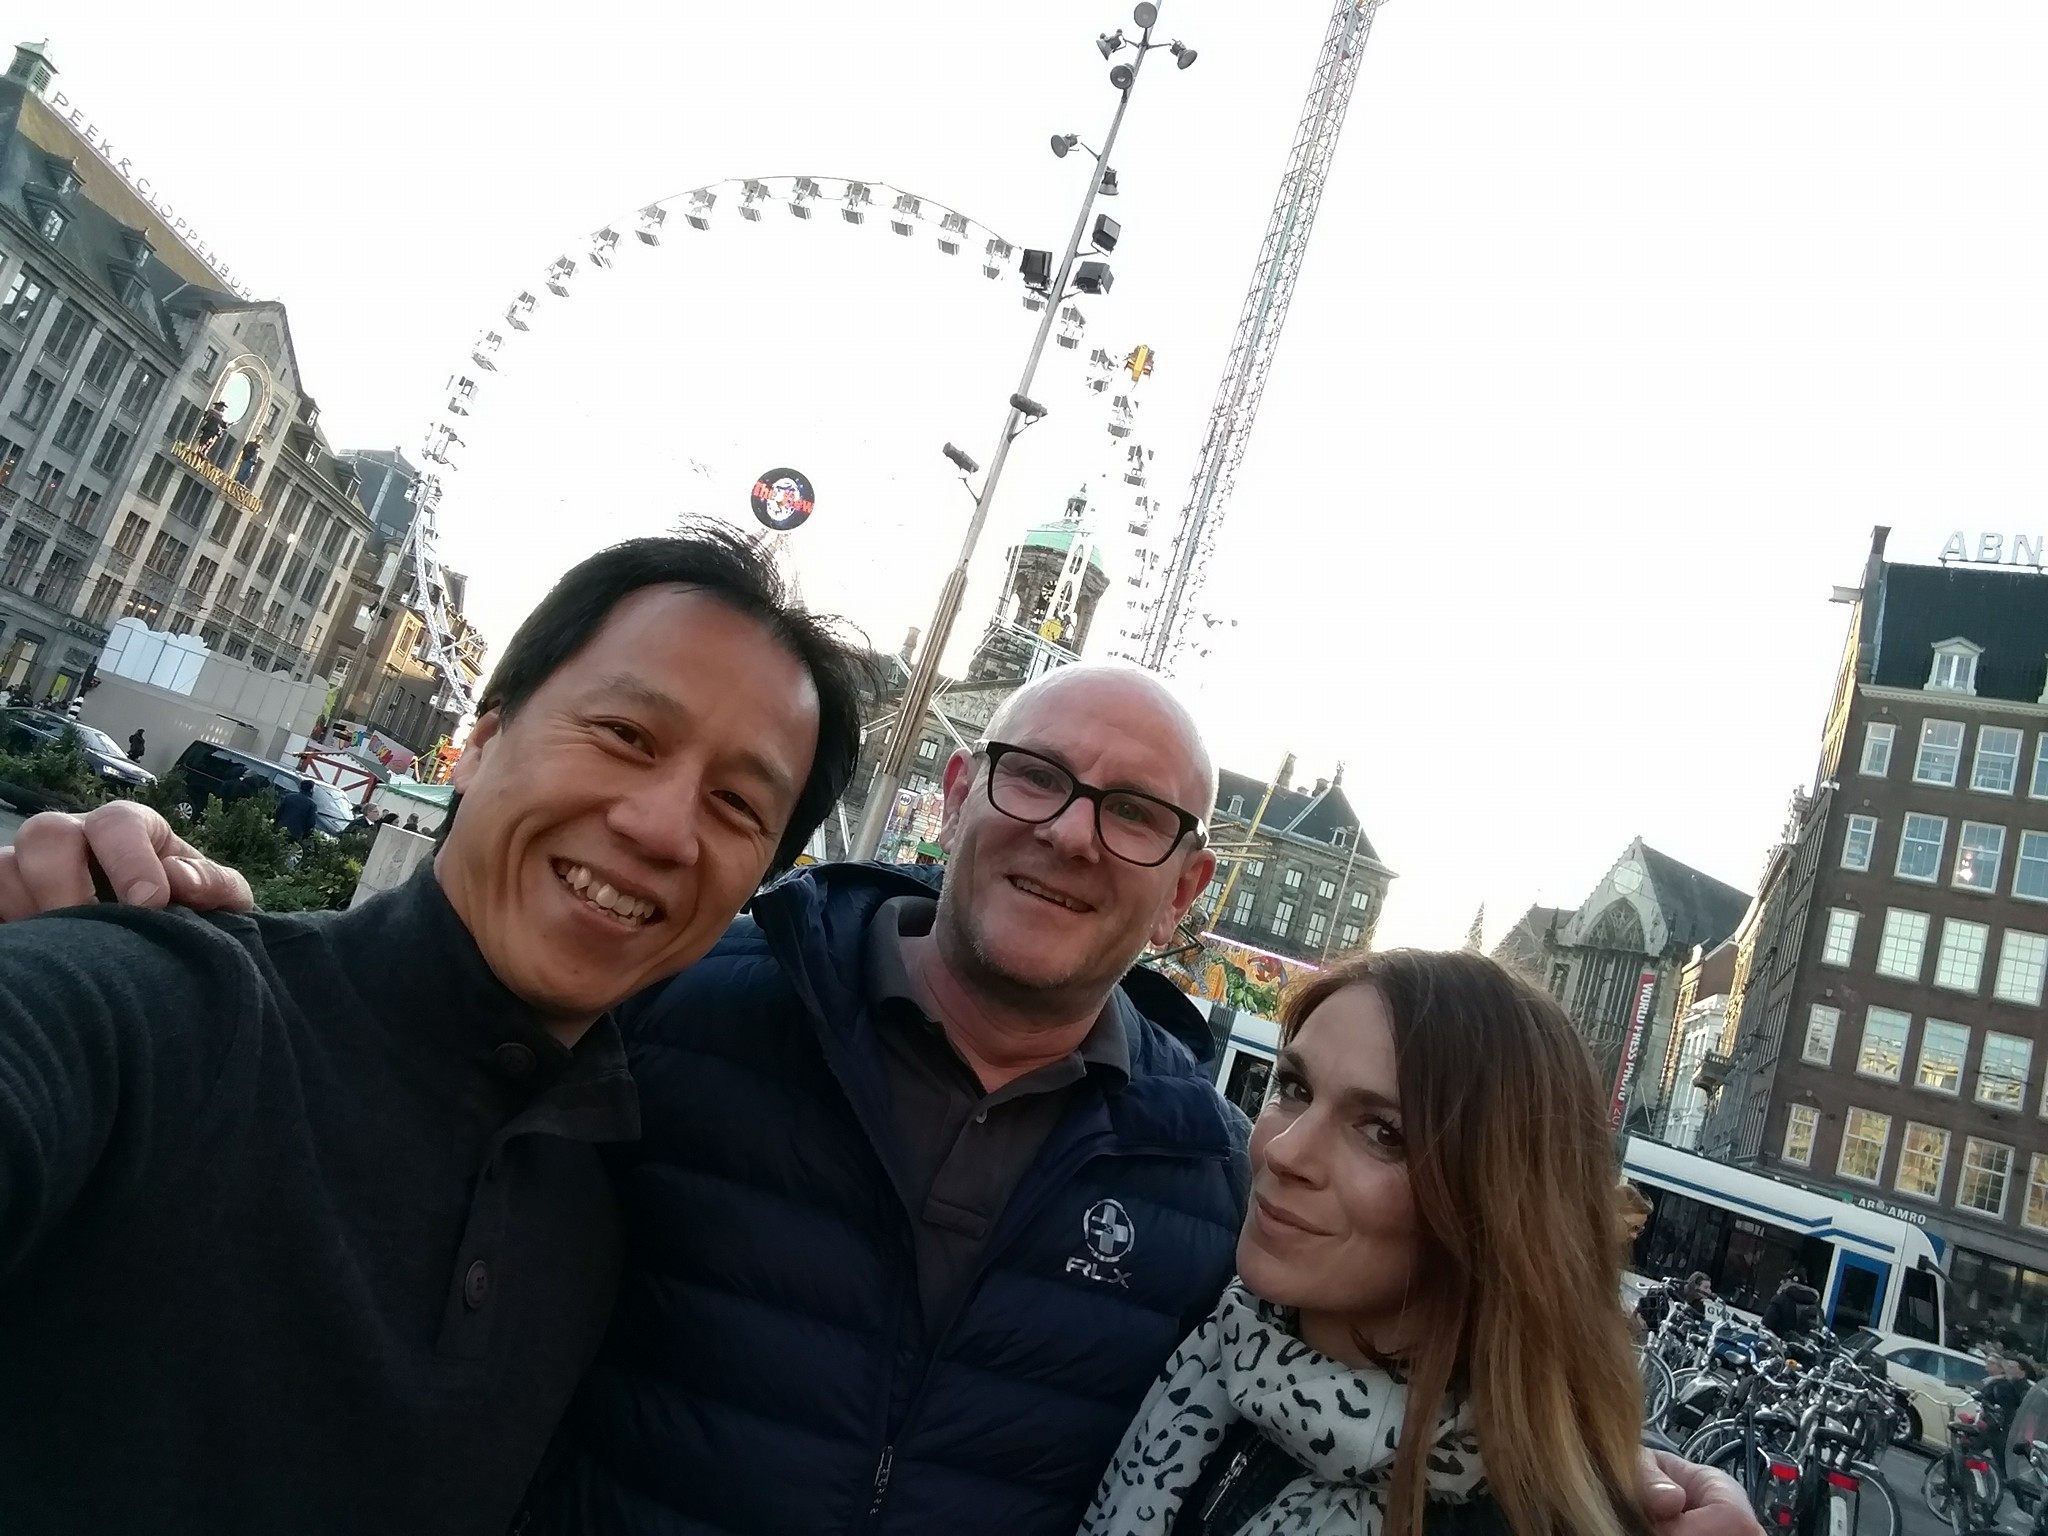 Tourists at Dam Square